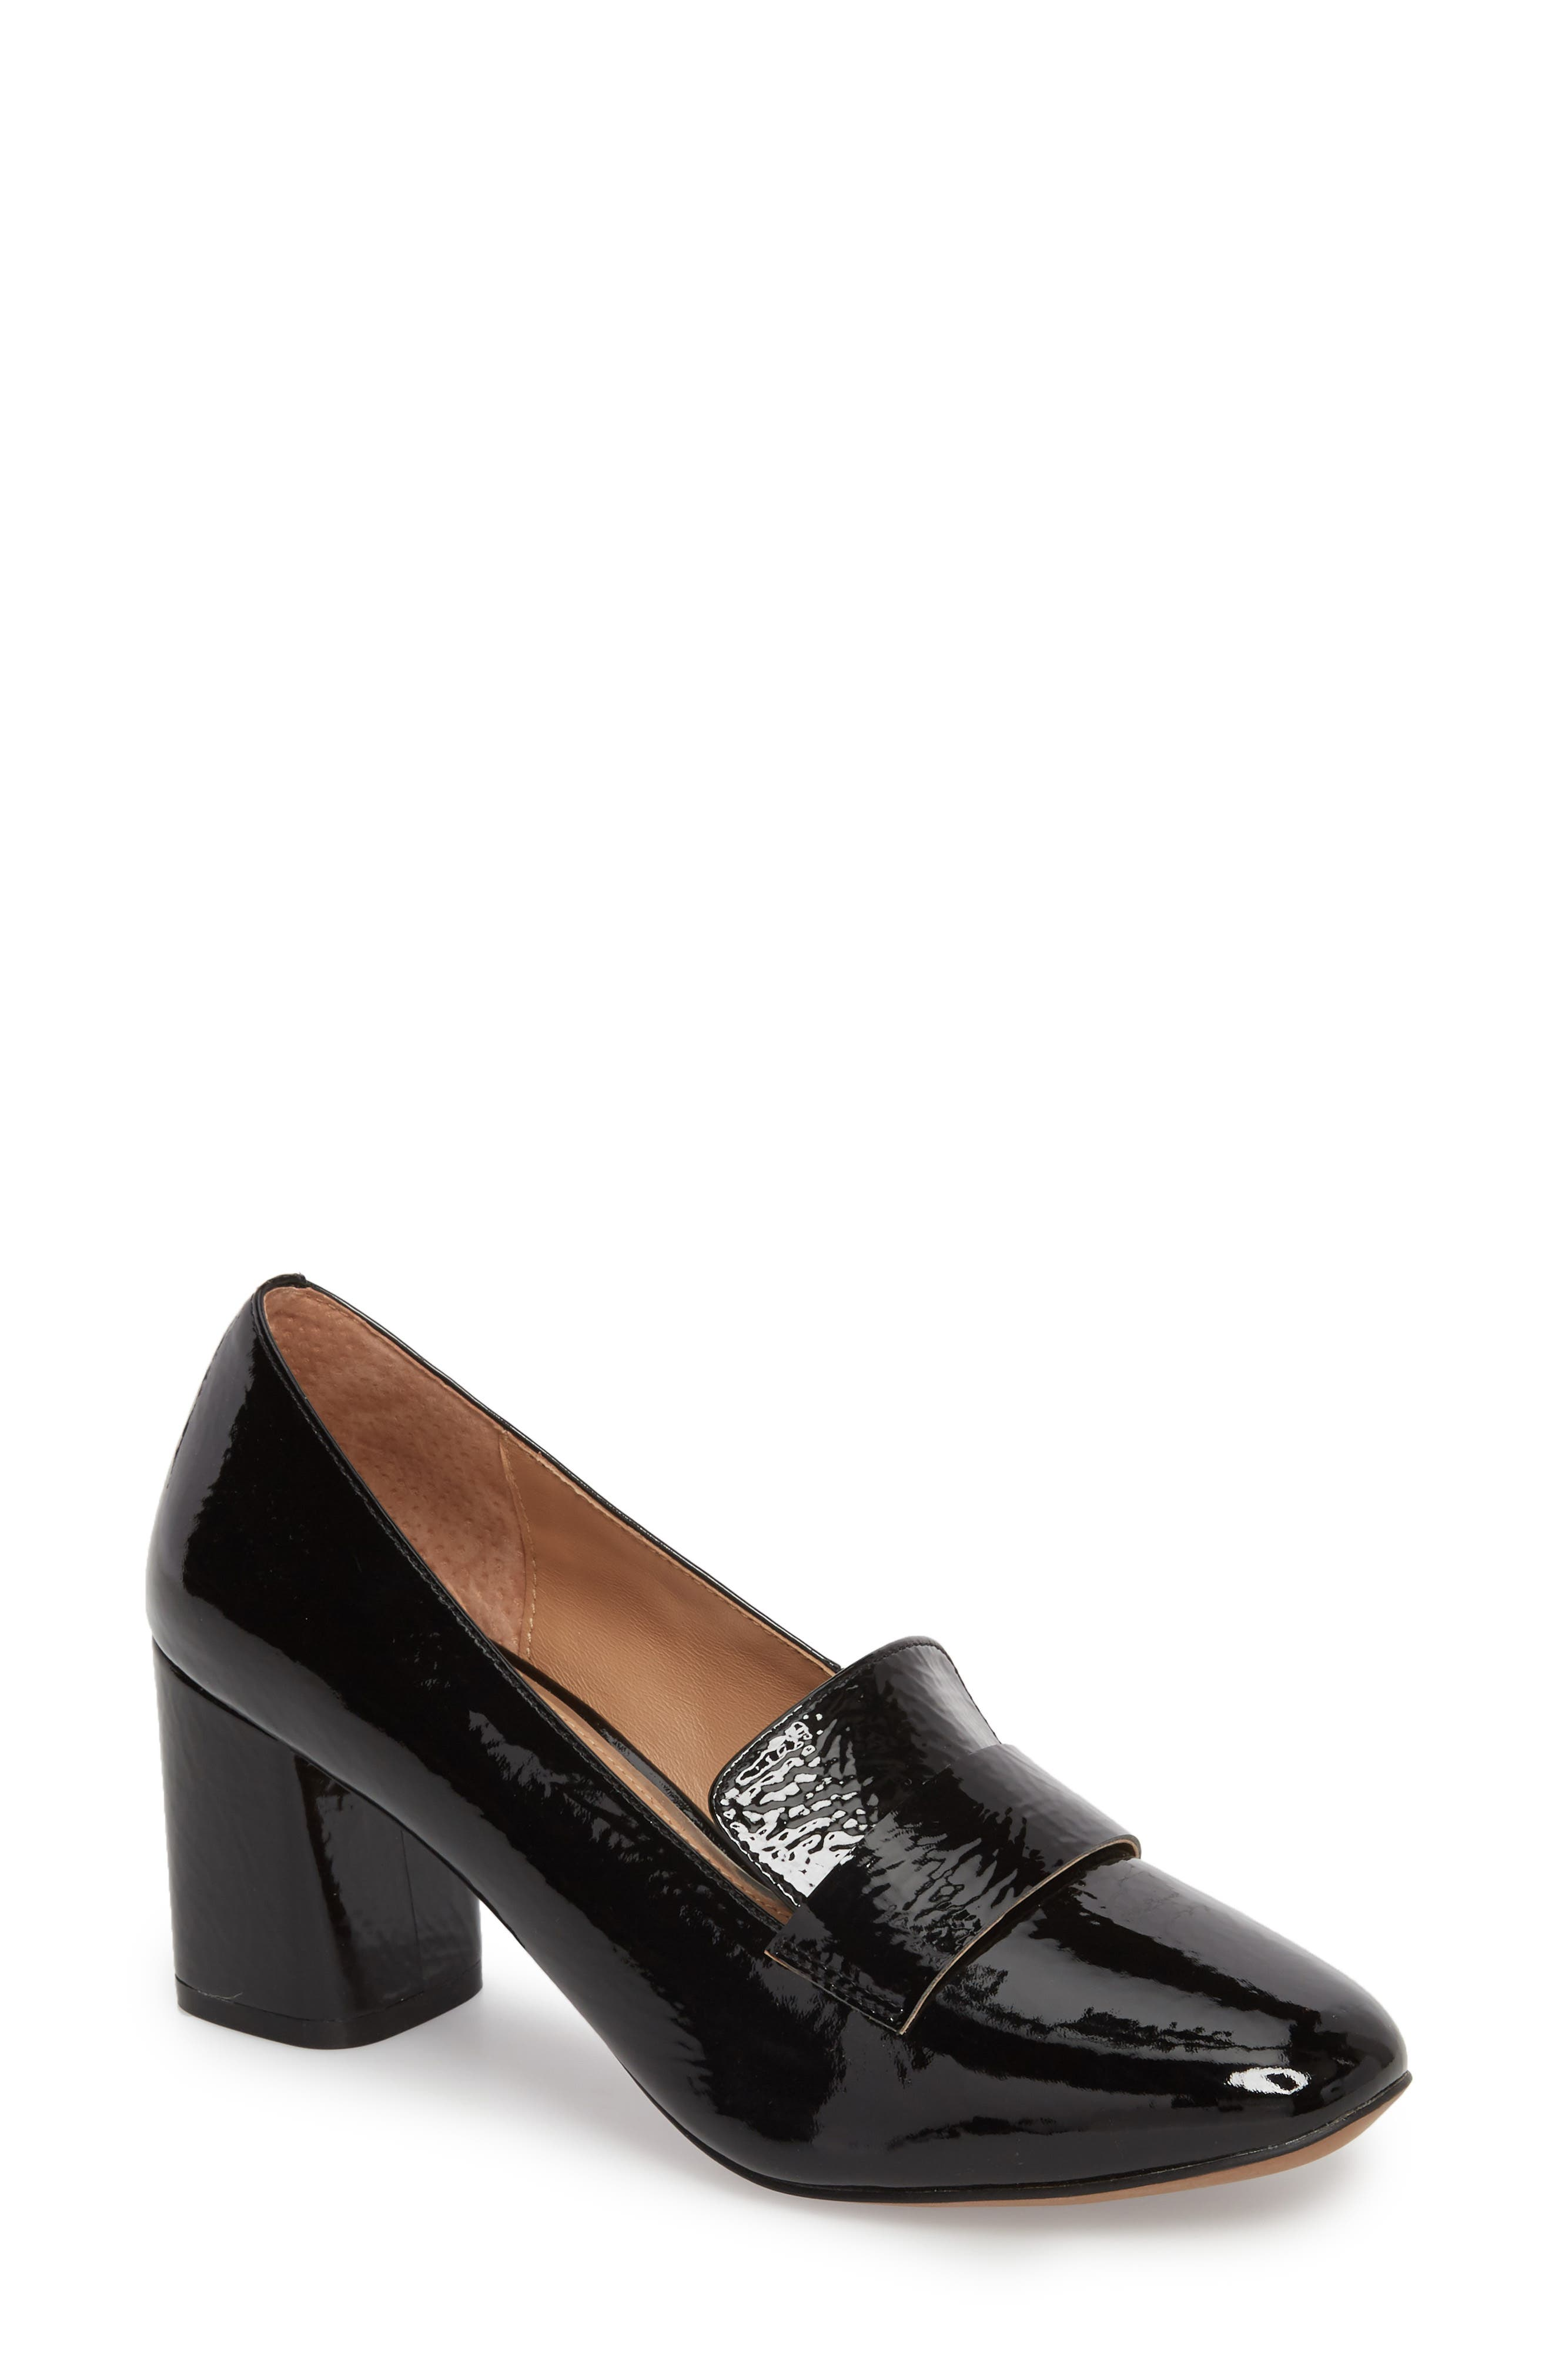 Camryn Loafer Pump, Main, color, BLACK CRINKLE PATENT